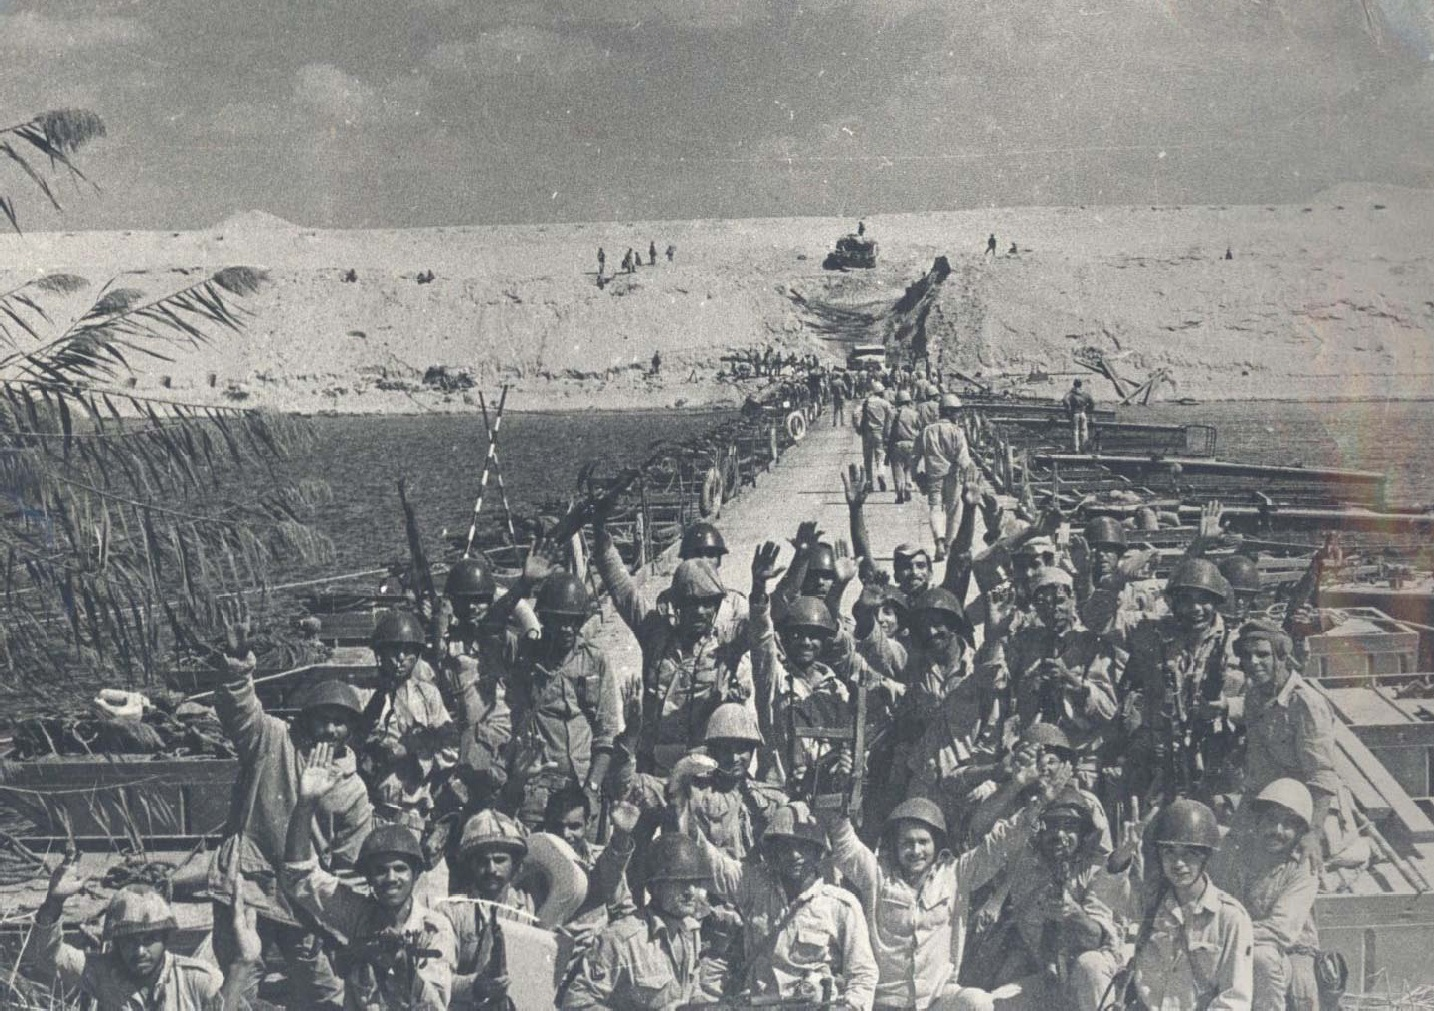 Egyptian soldiers celebrate crossing the Suez canal, Ramadan War (1973/74)